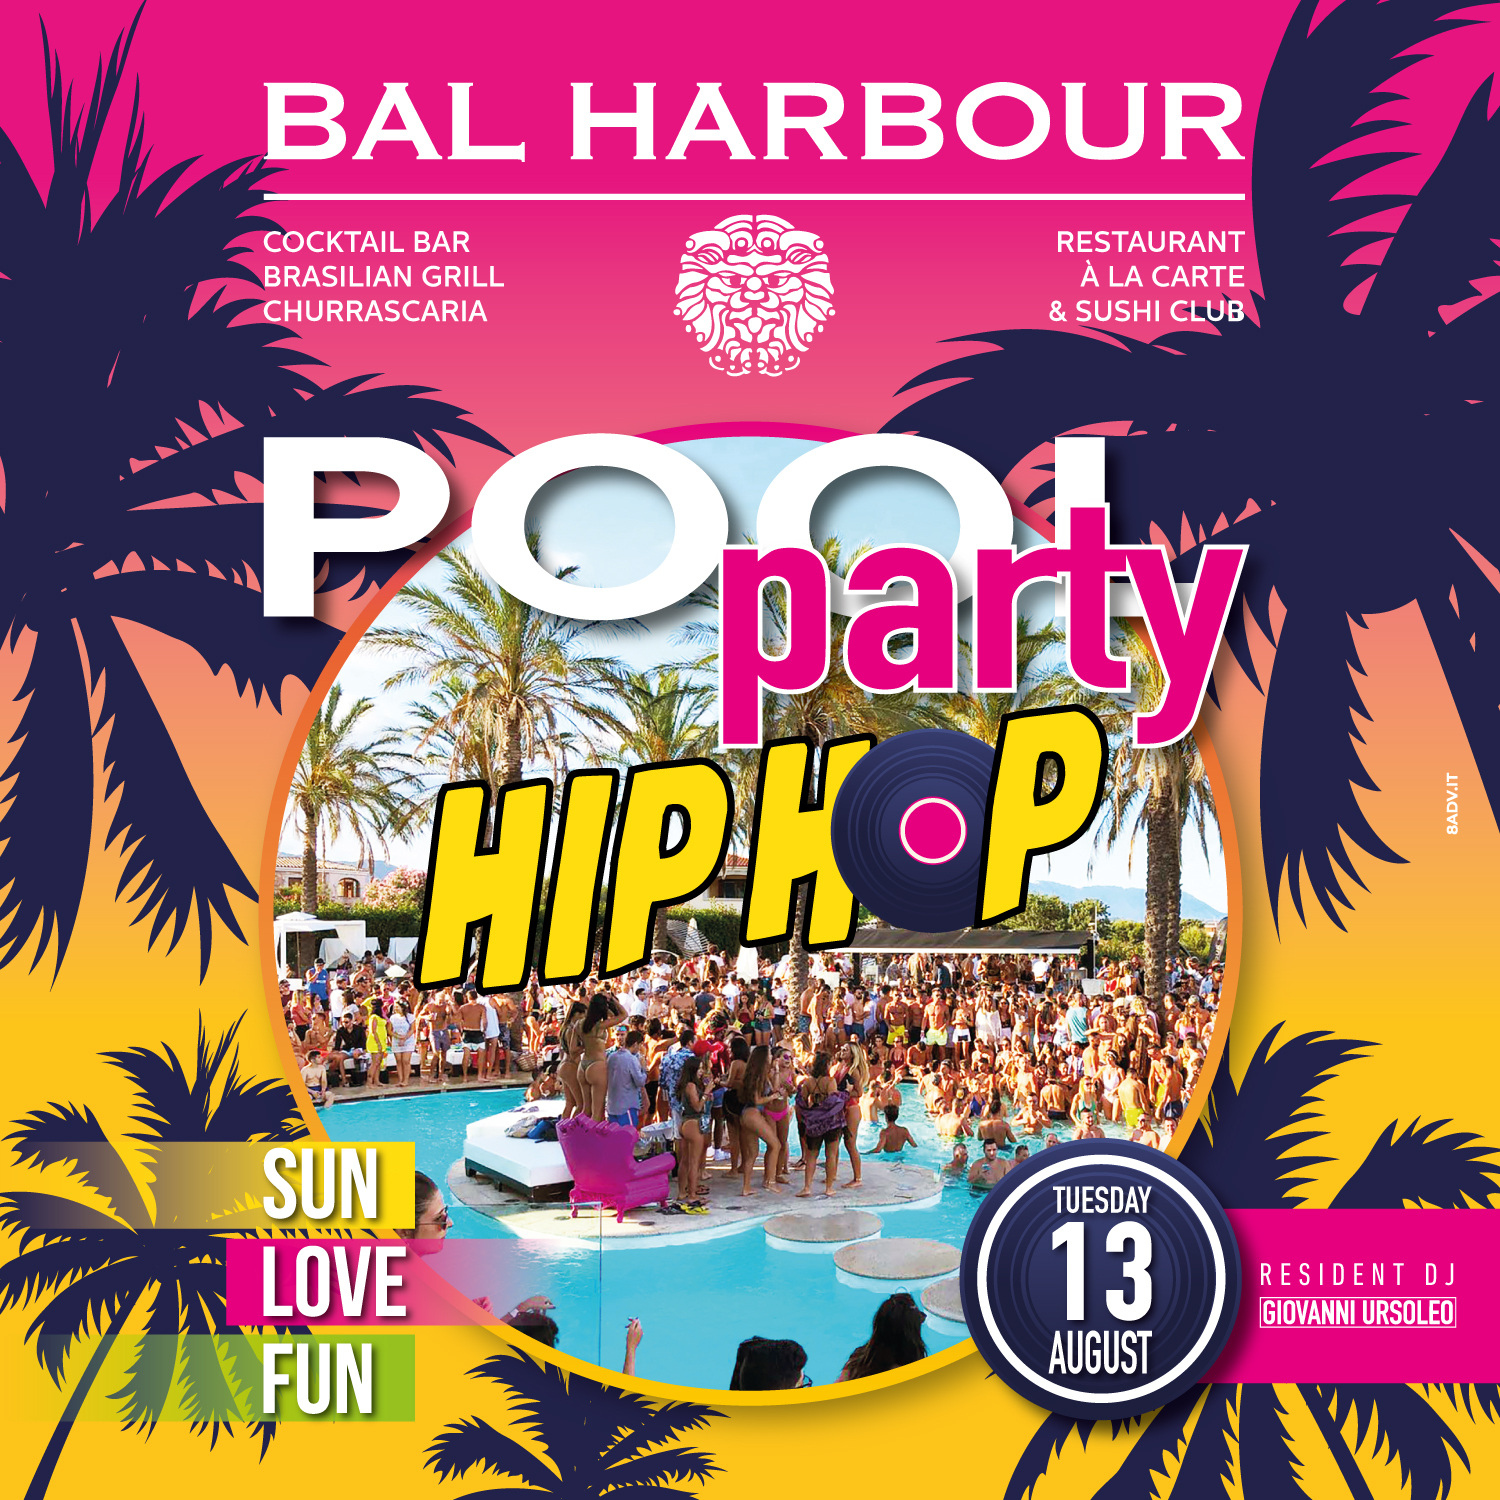 hip hop pool party bal harbour san teodoro summer sardegna